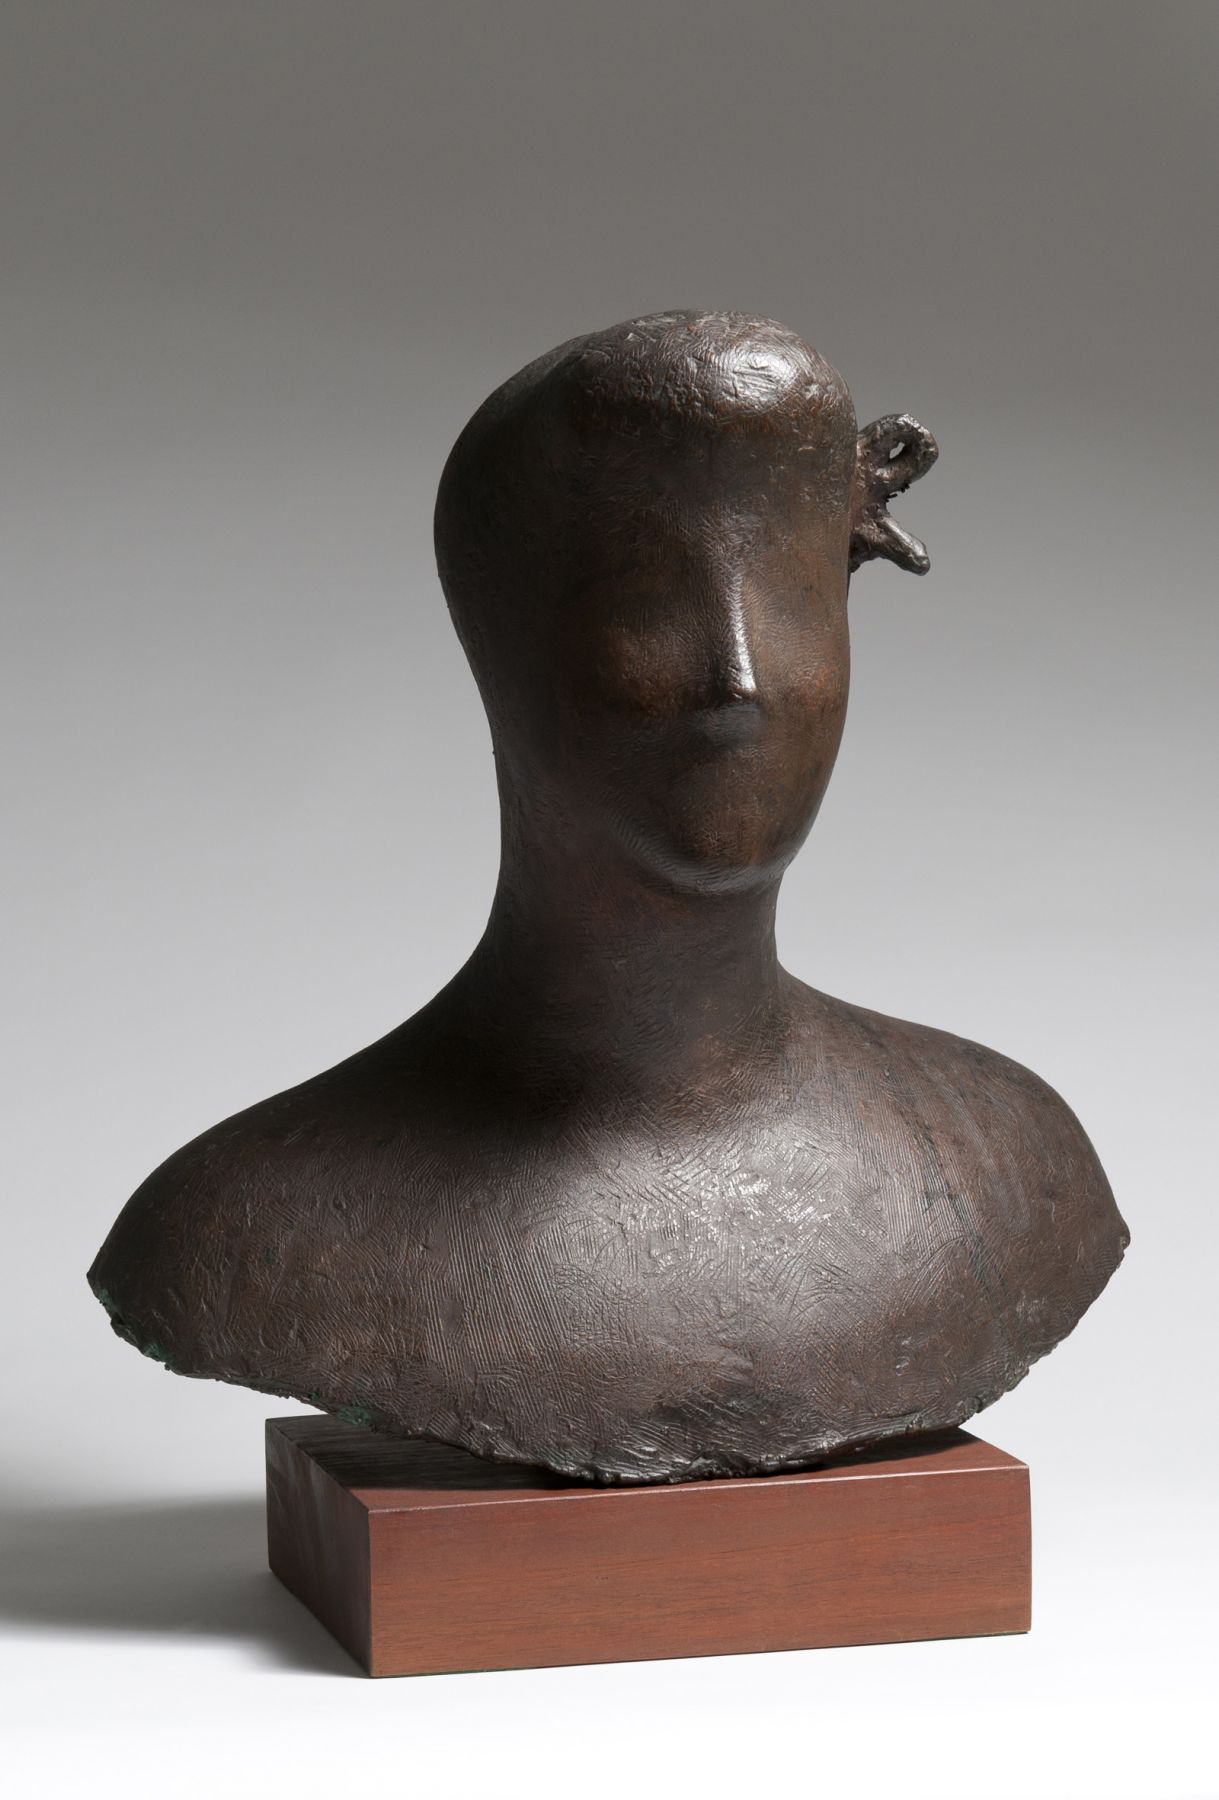 Elie Nadelman, Bust of a Woman, 1926–27, galvano plastique, 21 1/4 h x 20 1/2 w x 12 1/2 d inches